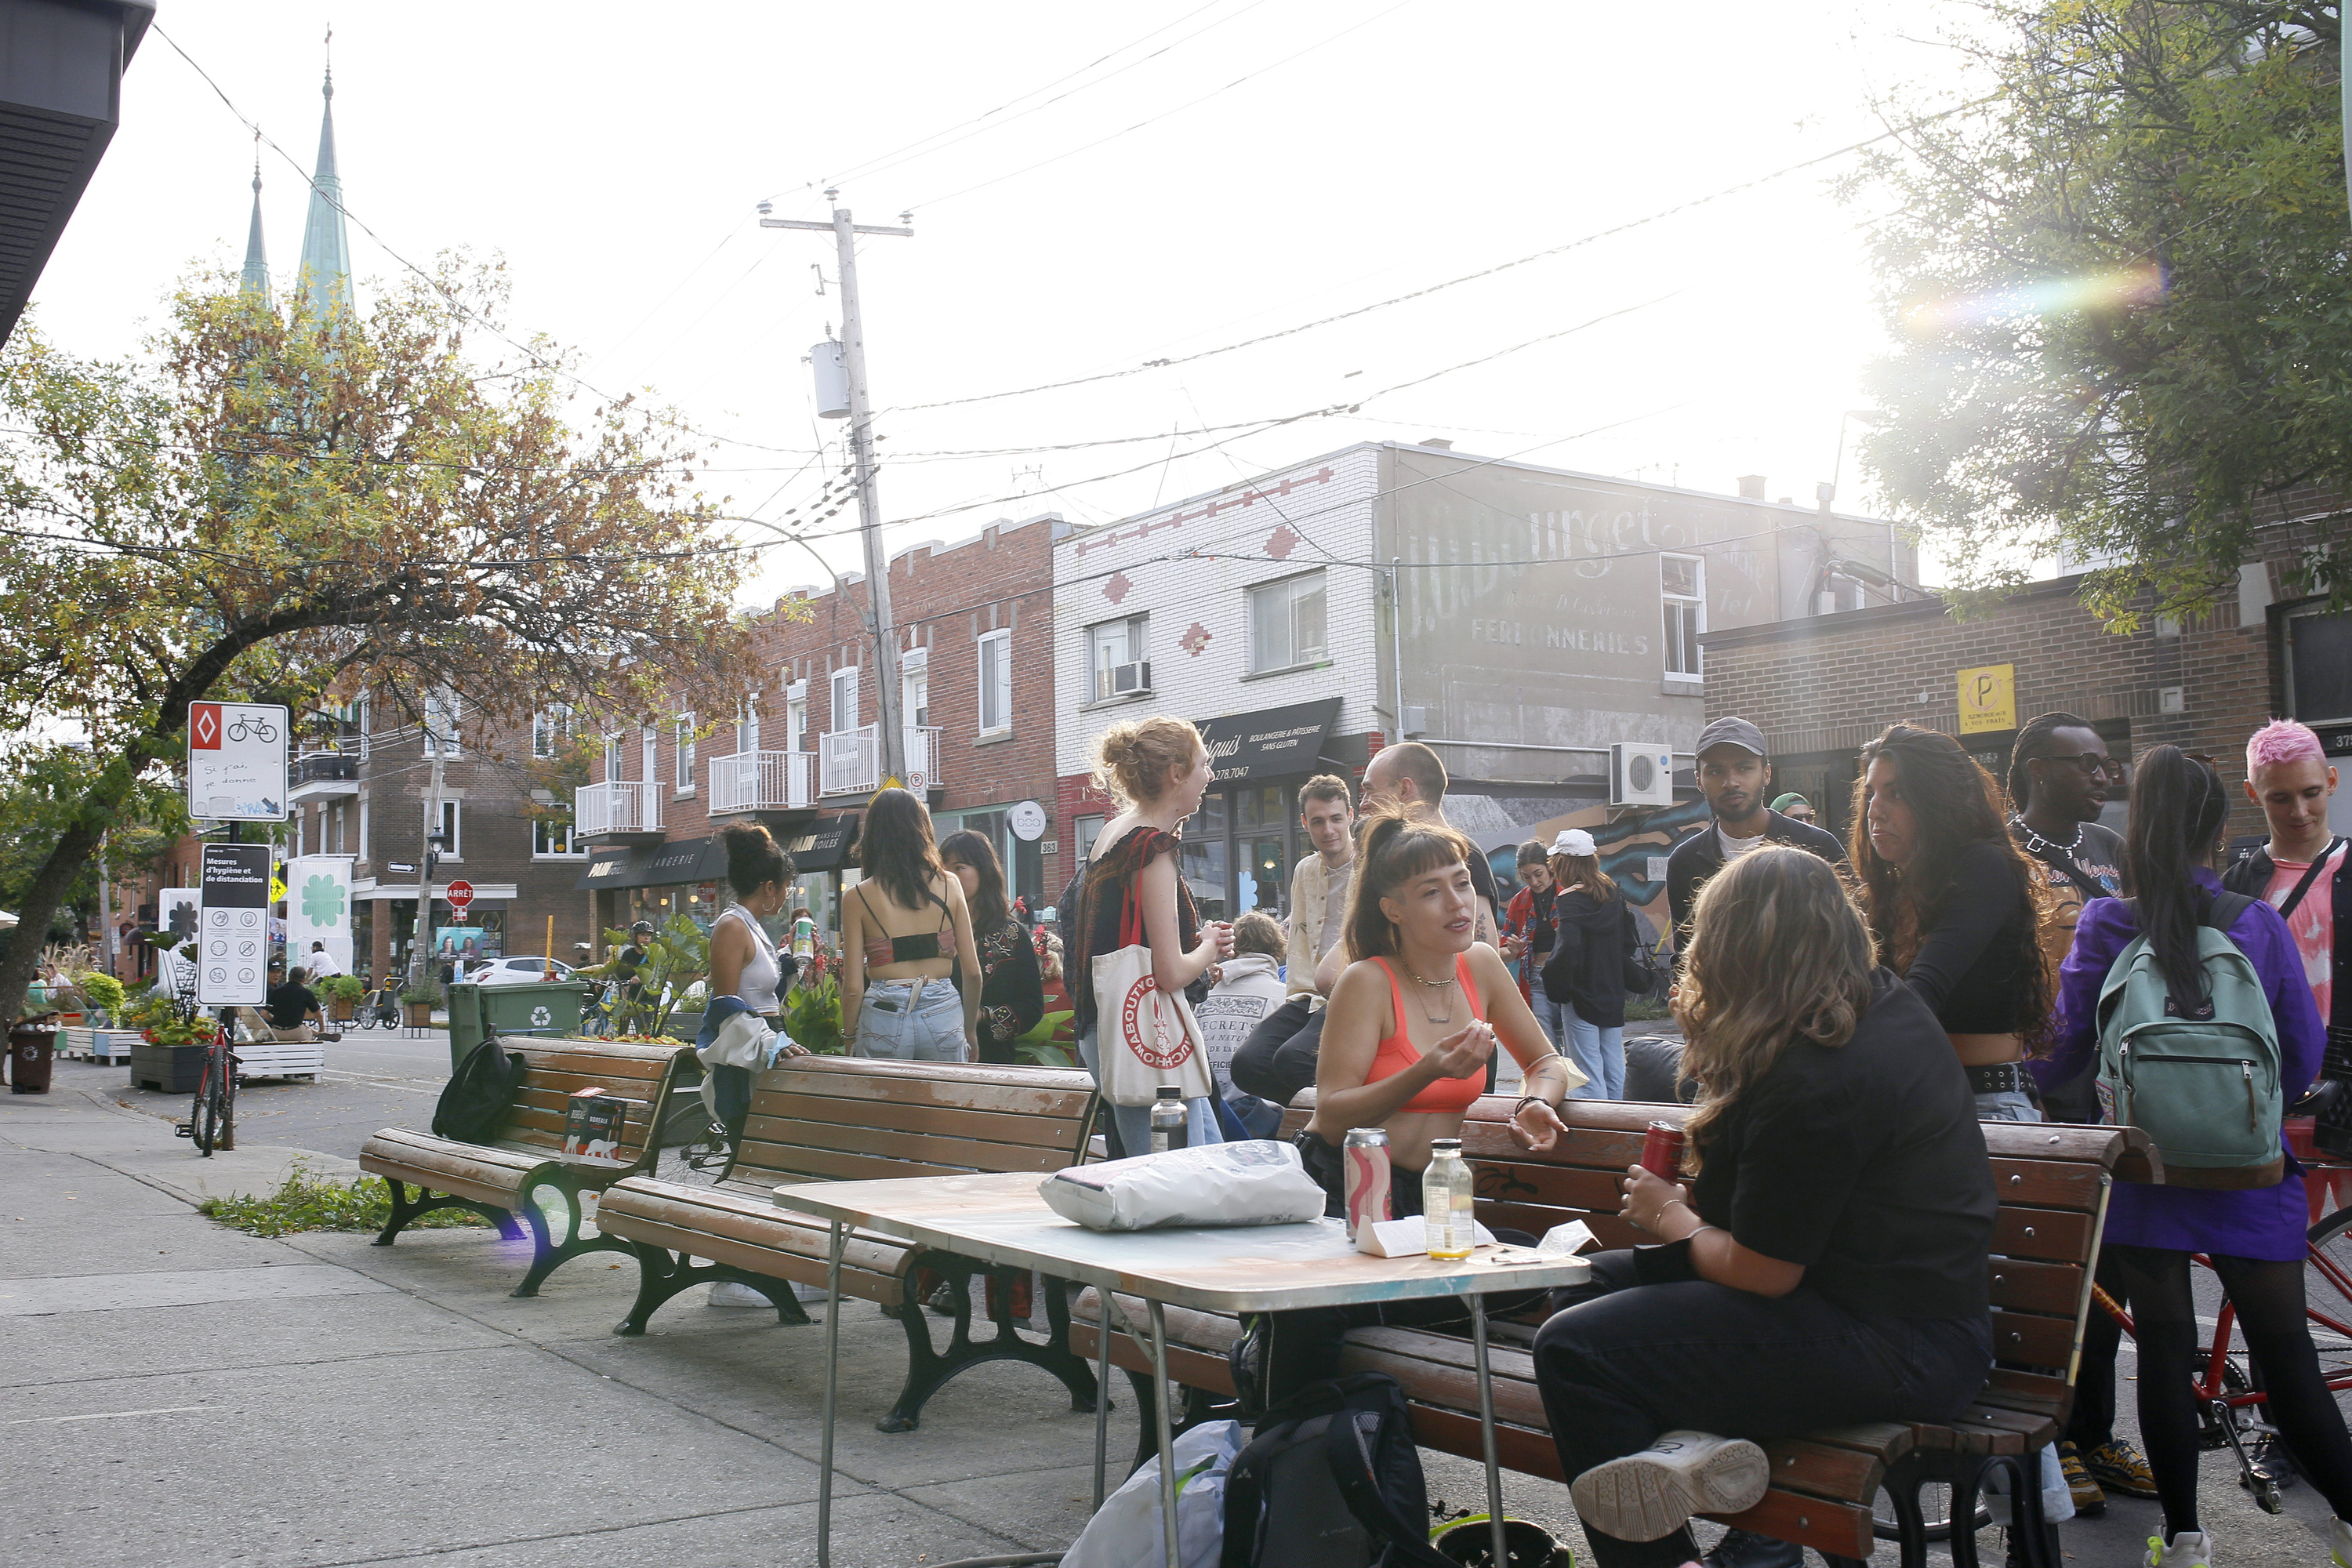 Montreal's own Villeray neighbourhood has ranked among the coolest in the world for 2021